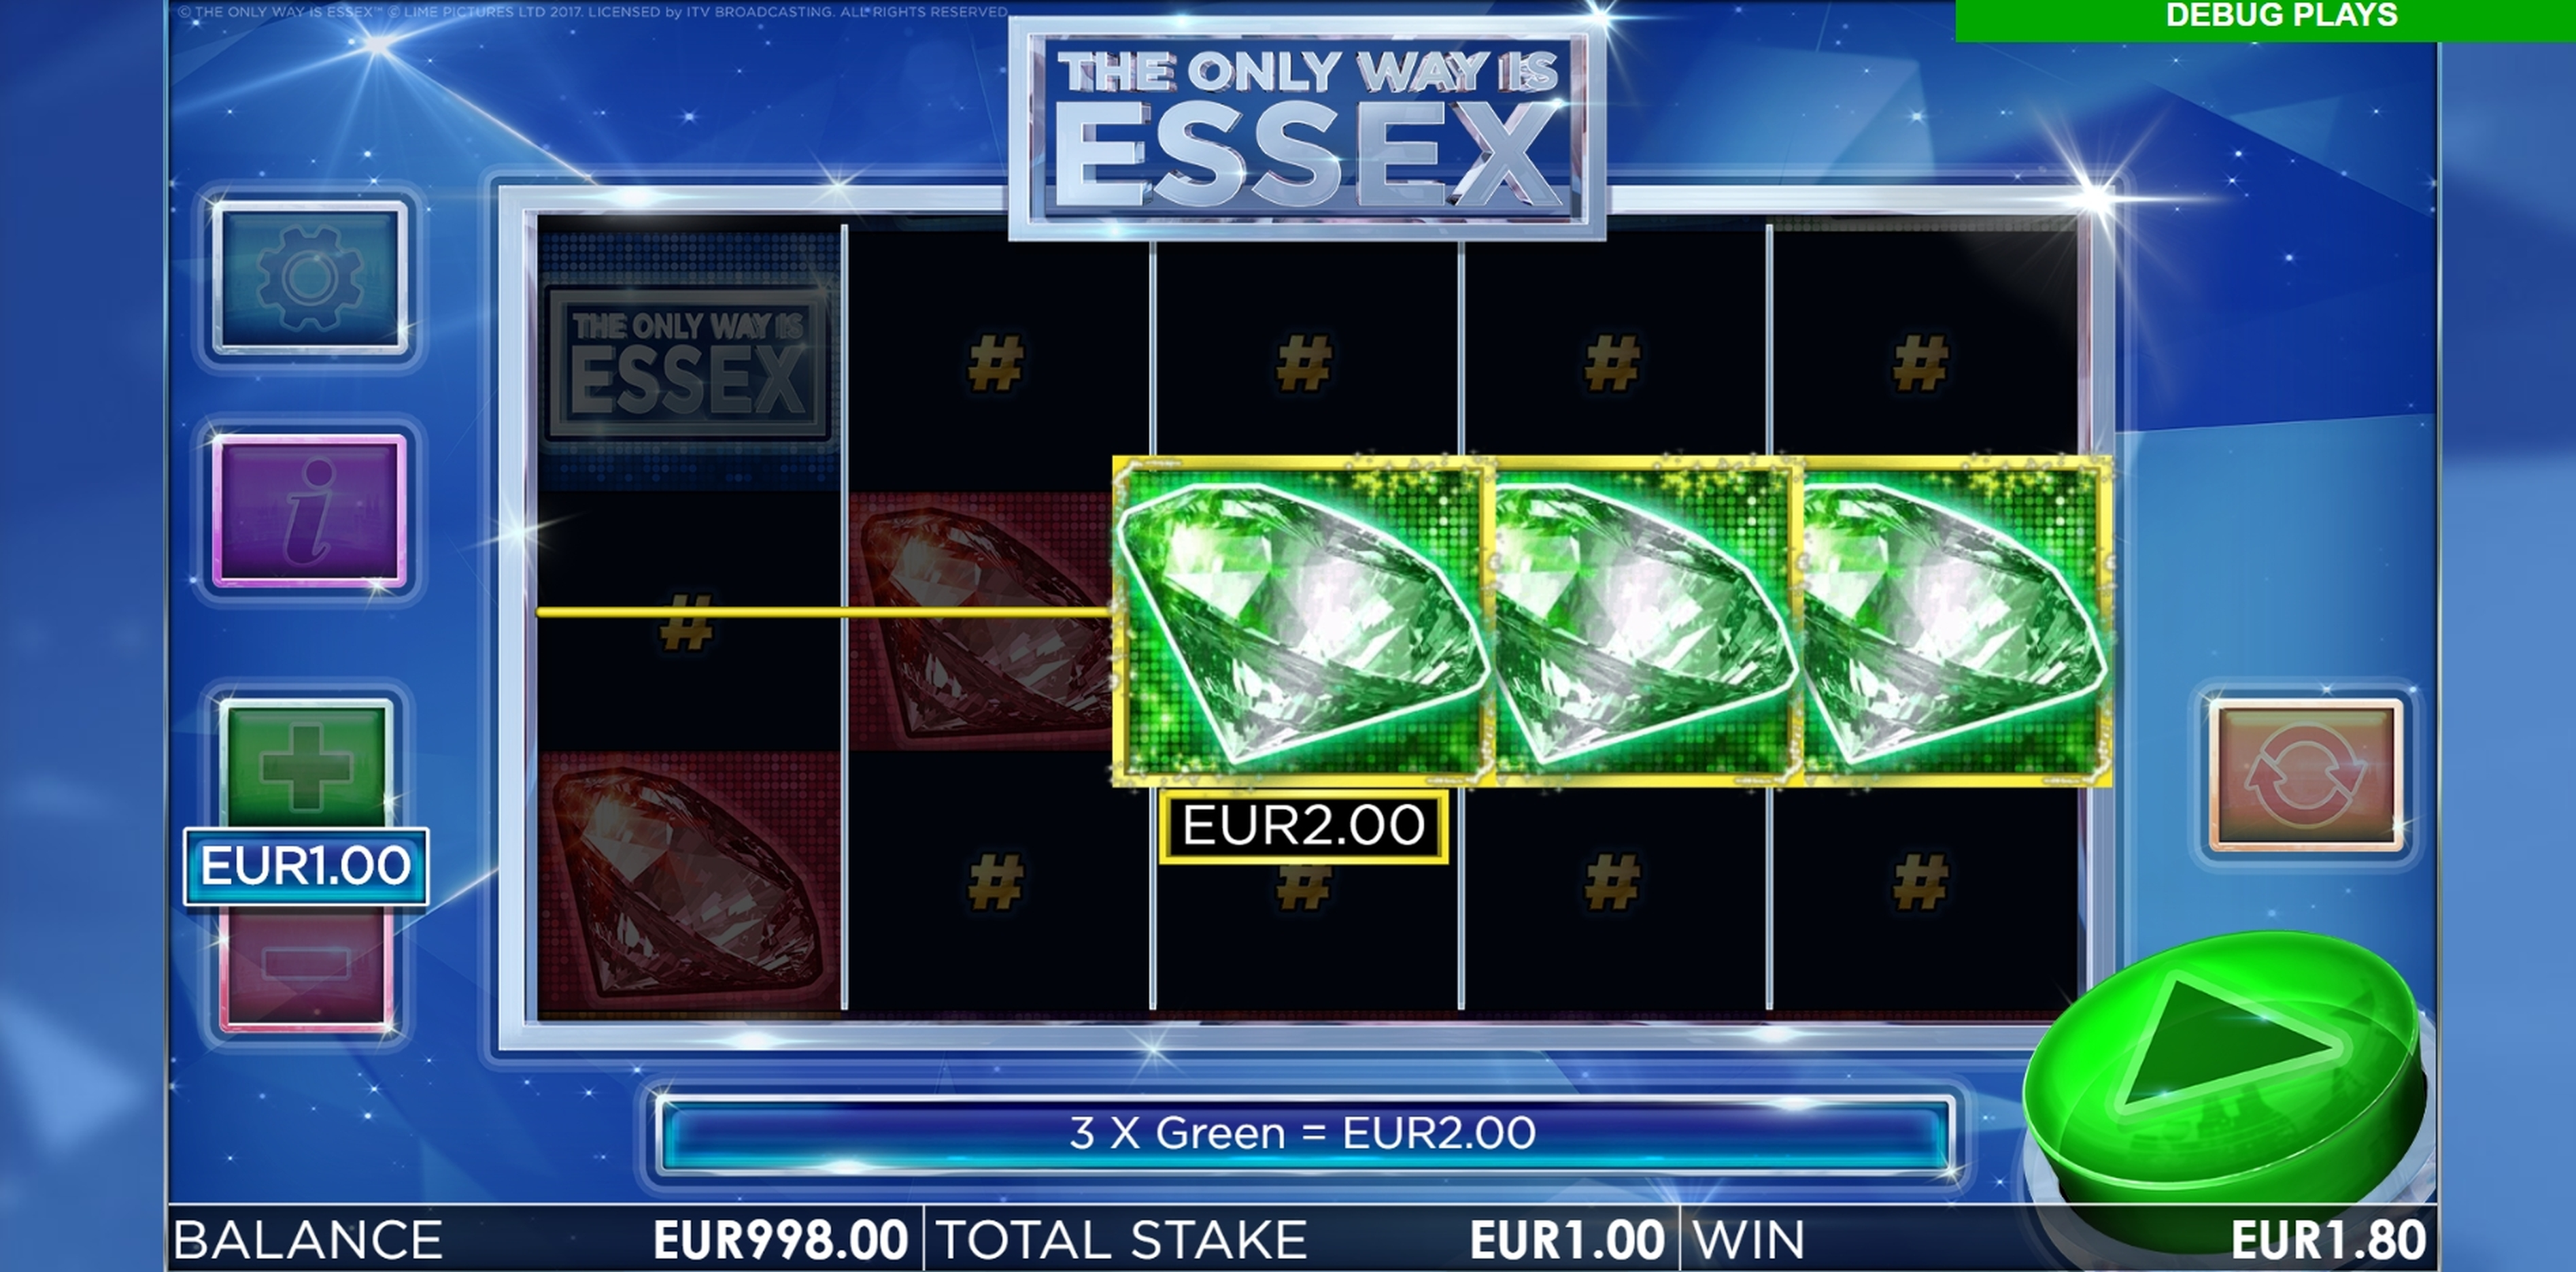 Win Money in The Only Way is Essex Free Slot Game by Storm Gaming